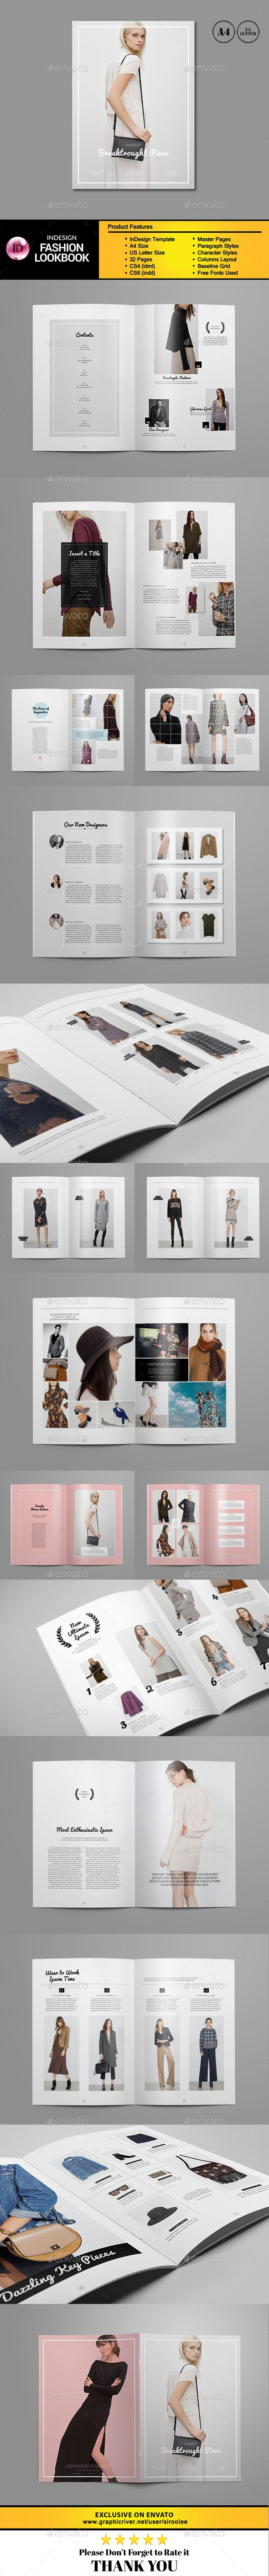 Fashion Lookbook Magazine 32 Pages Template InDesign INDD Design Download